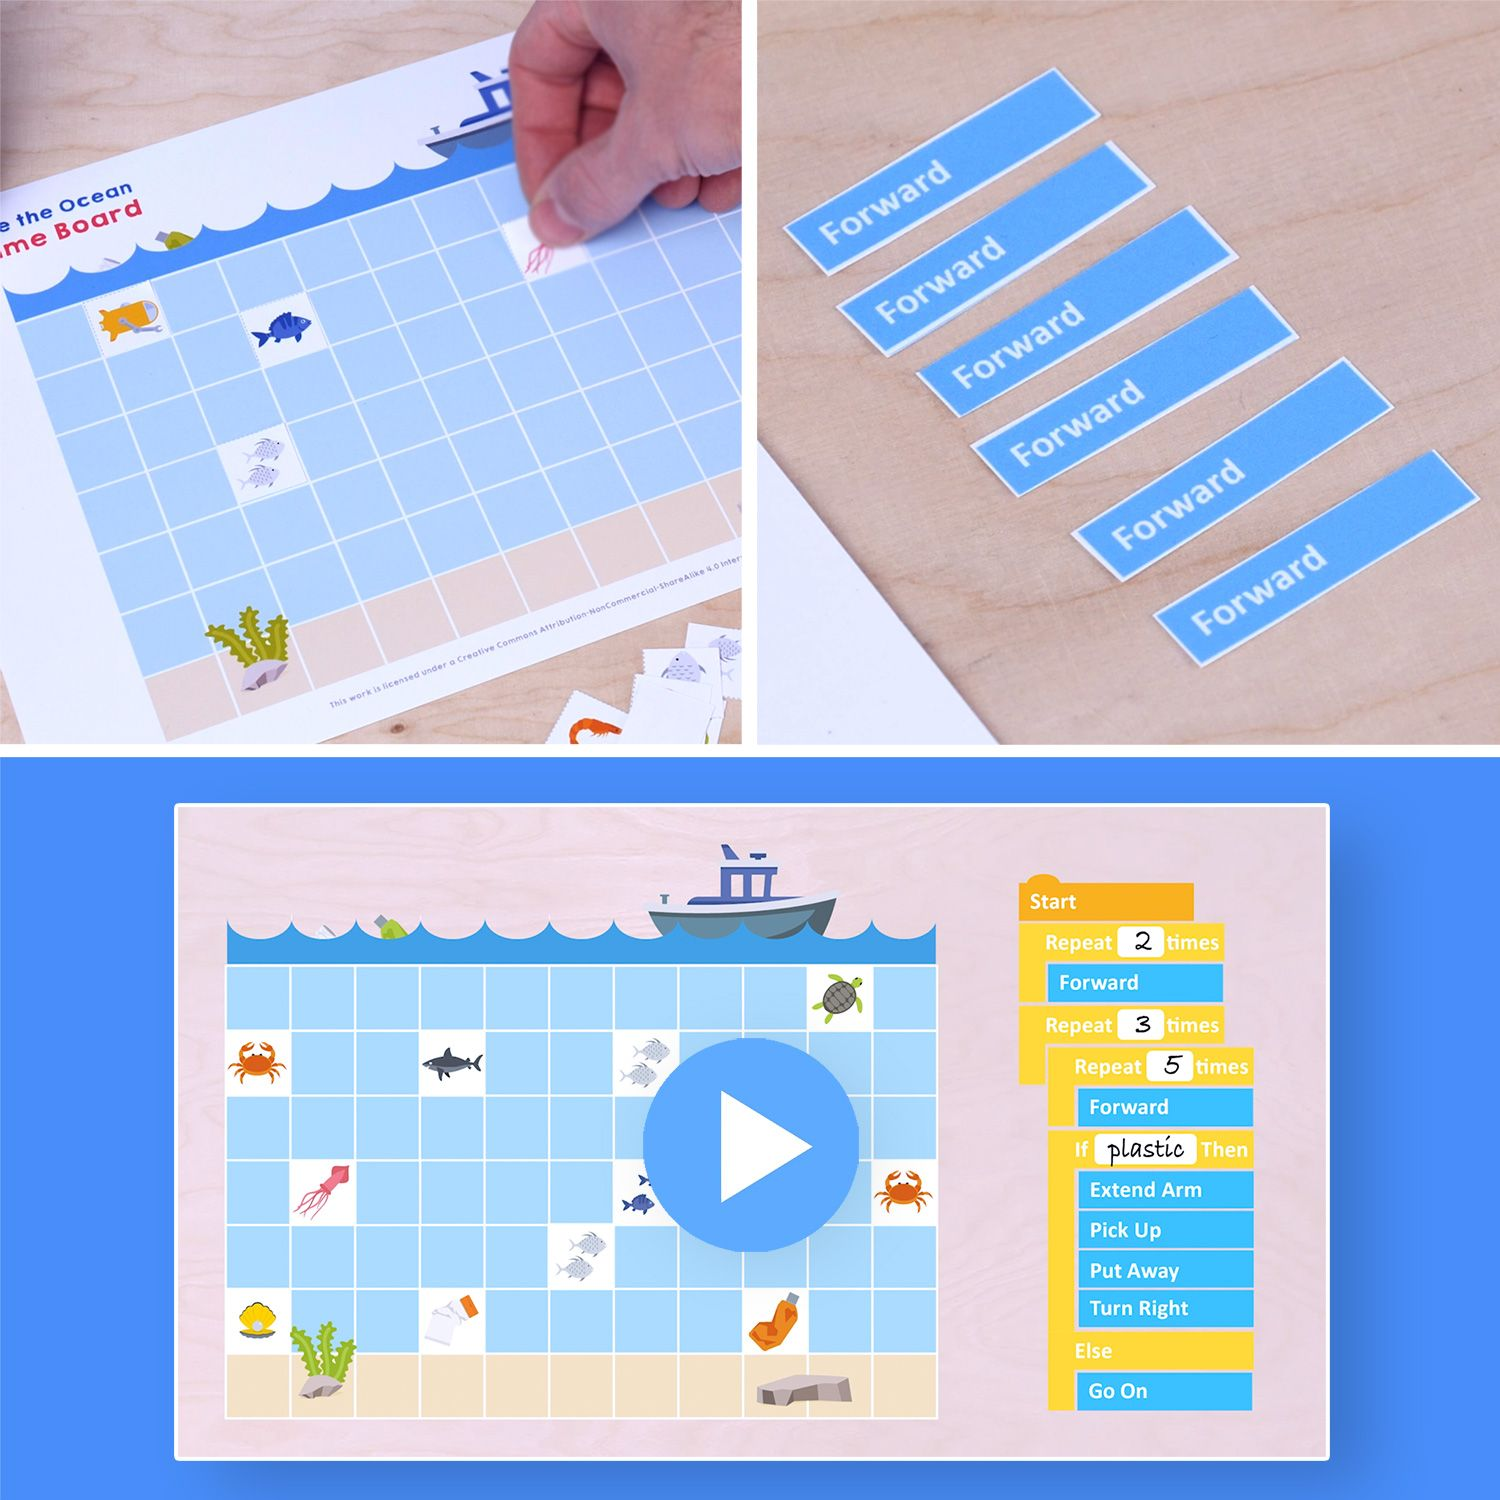 Learn Computer Science Coding Game For Kids With This